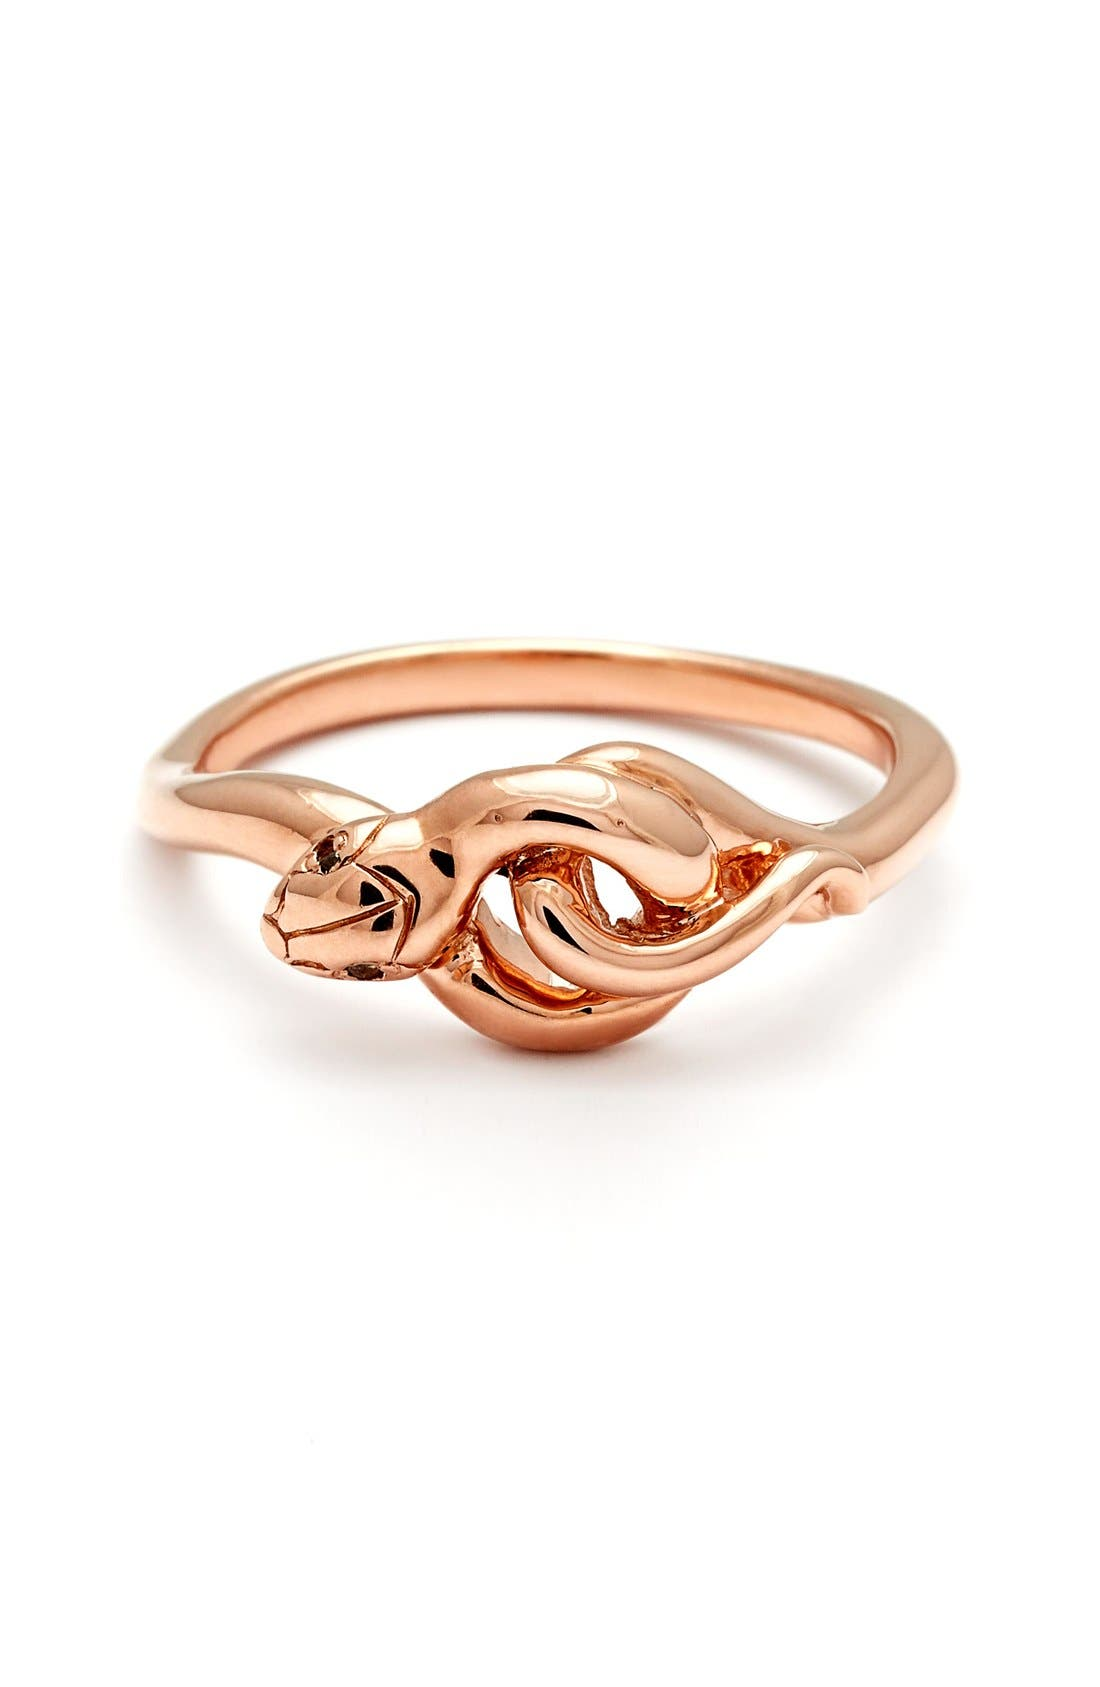 Alternate Image 1 Selected - Anna Sheffield 'Small Serpent' Rose Gold Ring